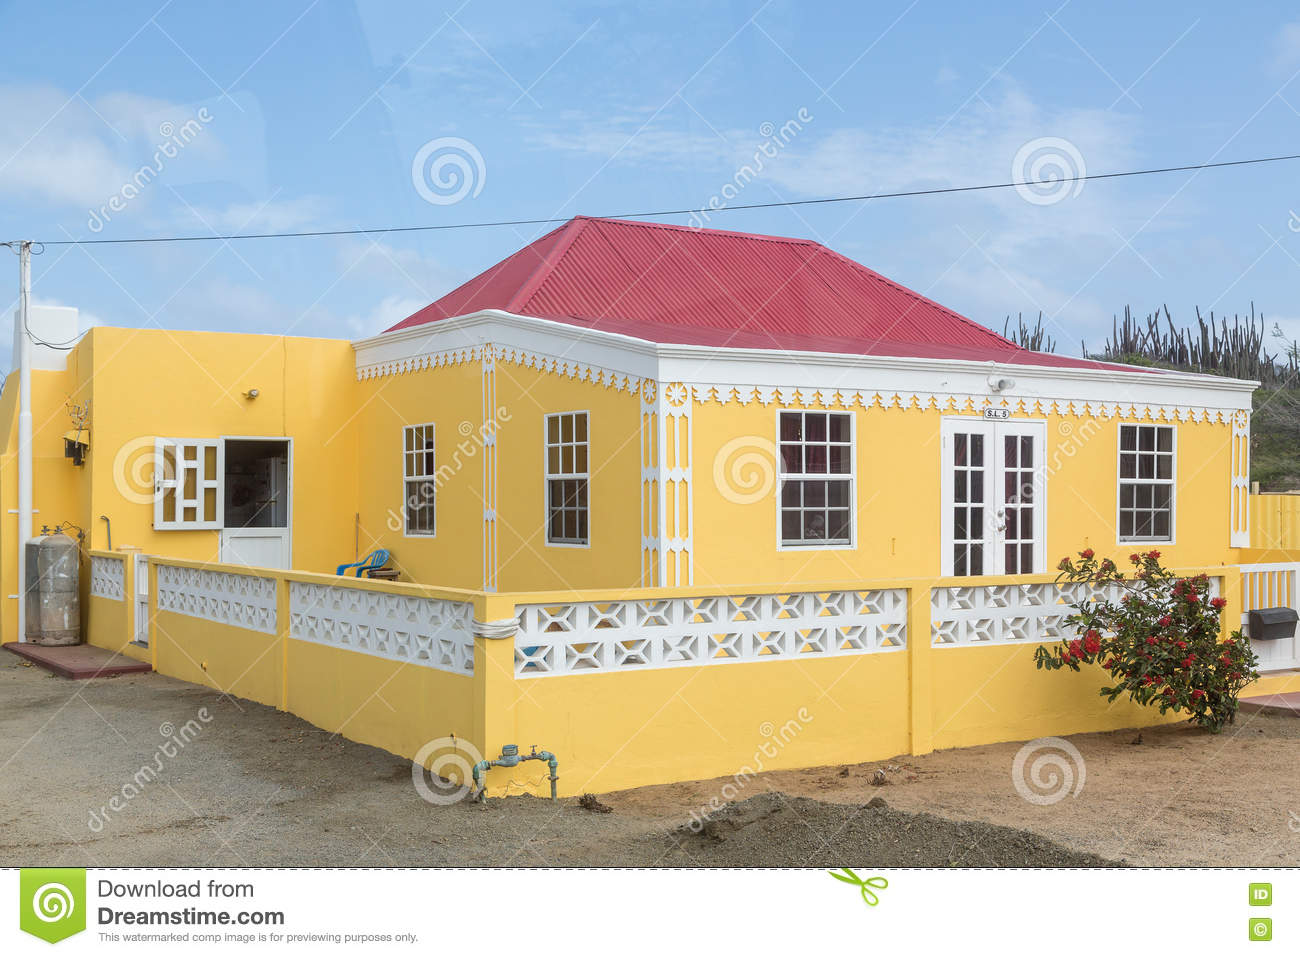 Yellow Stucco House With Red Tile Roof Stock Photo Image